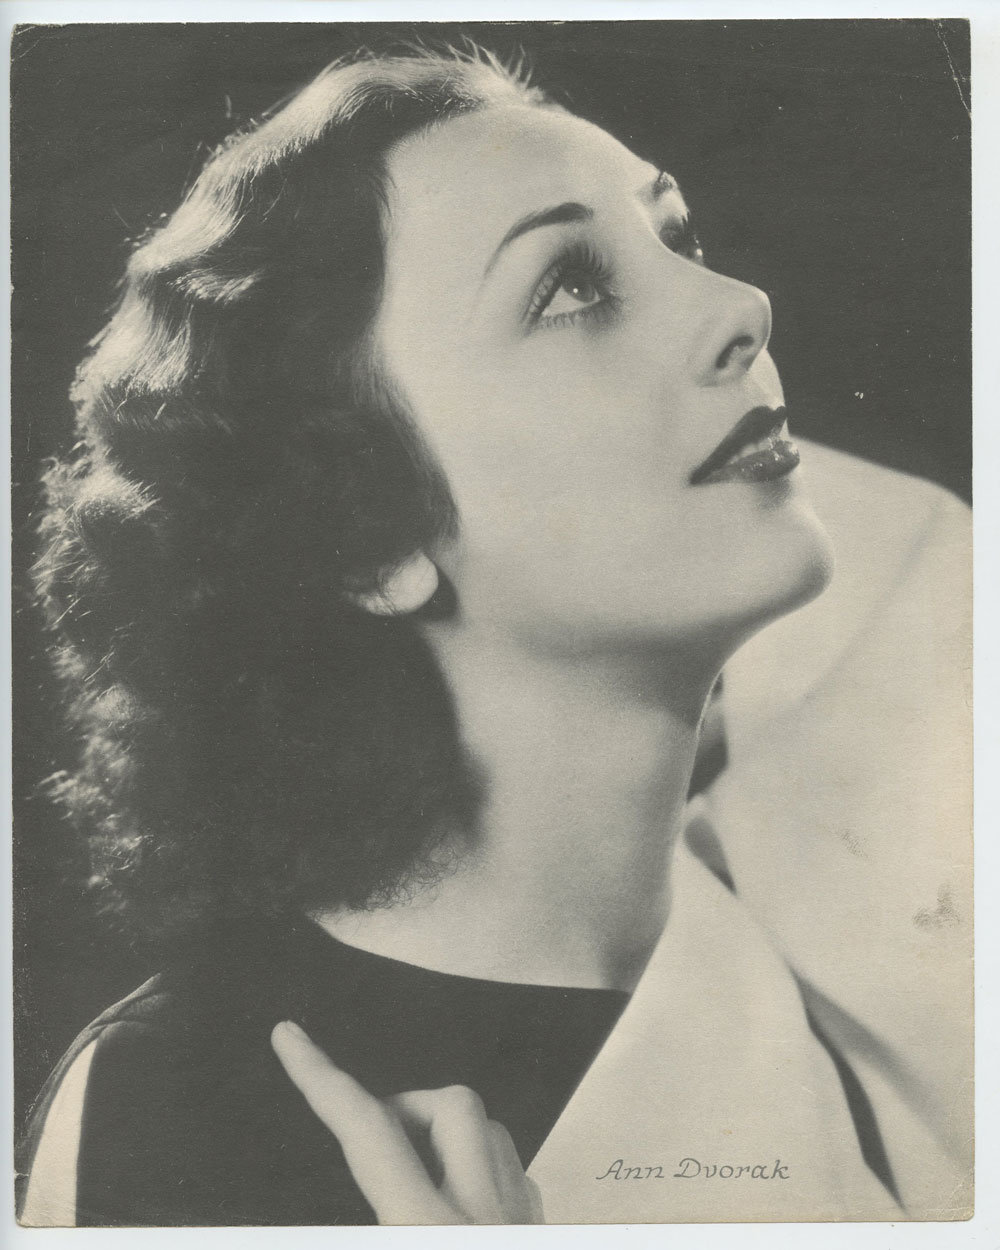 Ann Dvorak Photo Print 1930s Publicity Portrait